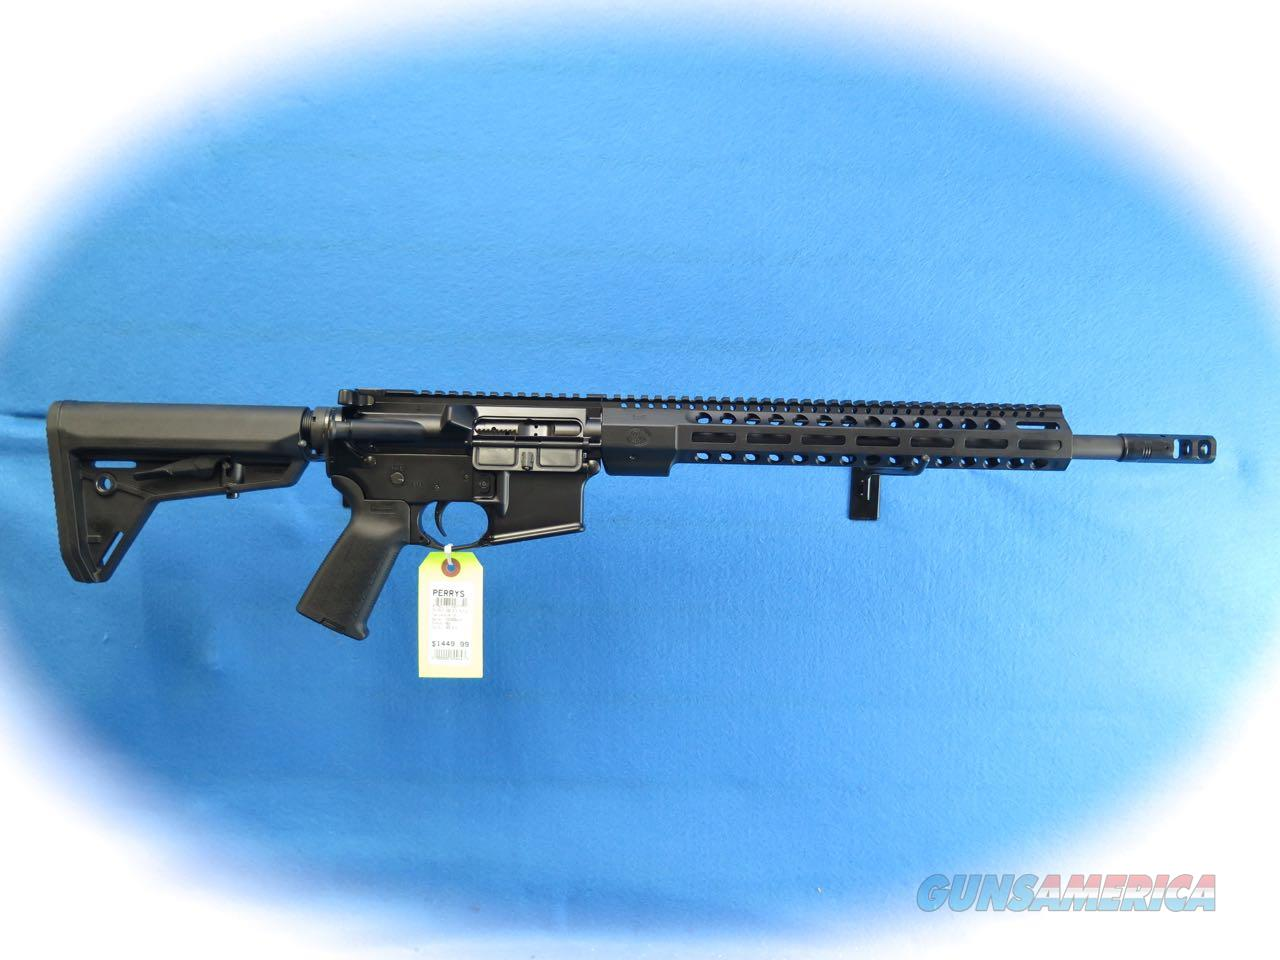 FNH FN 15 Tactical .300 BlkOut II Semi Auto Rifle **New** Guns > Pistols > FNH - Fabrique Nationale (FN) Rifles > Semi-auto > FN 15